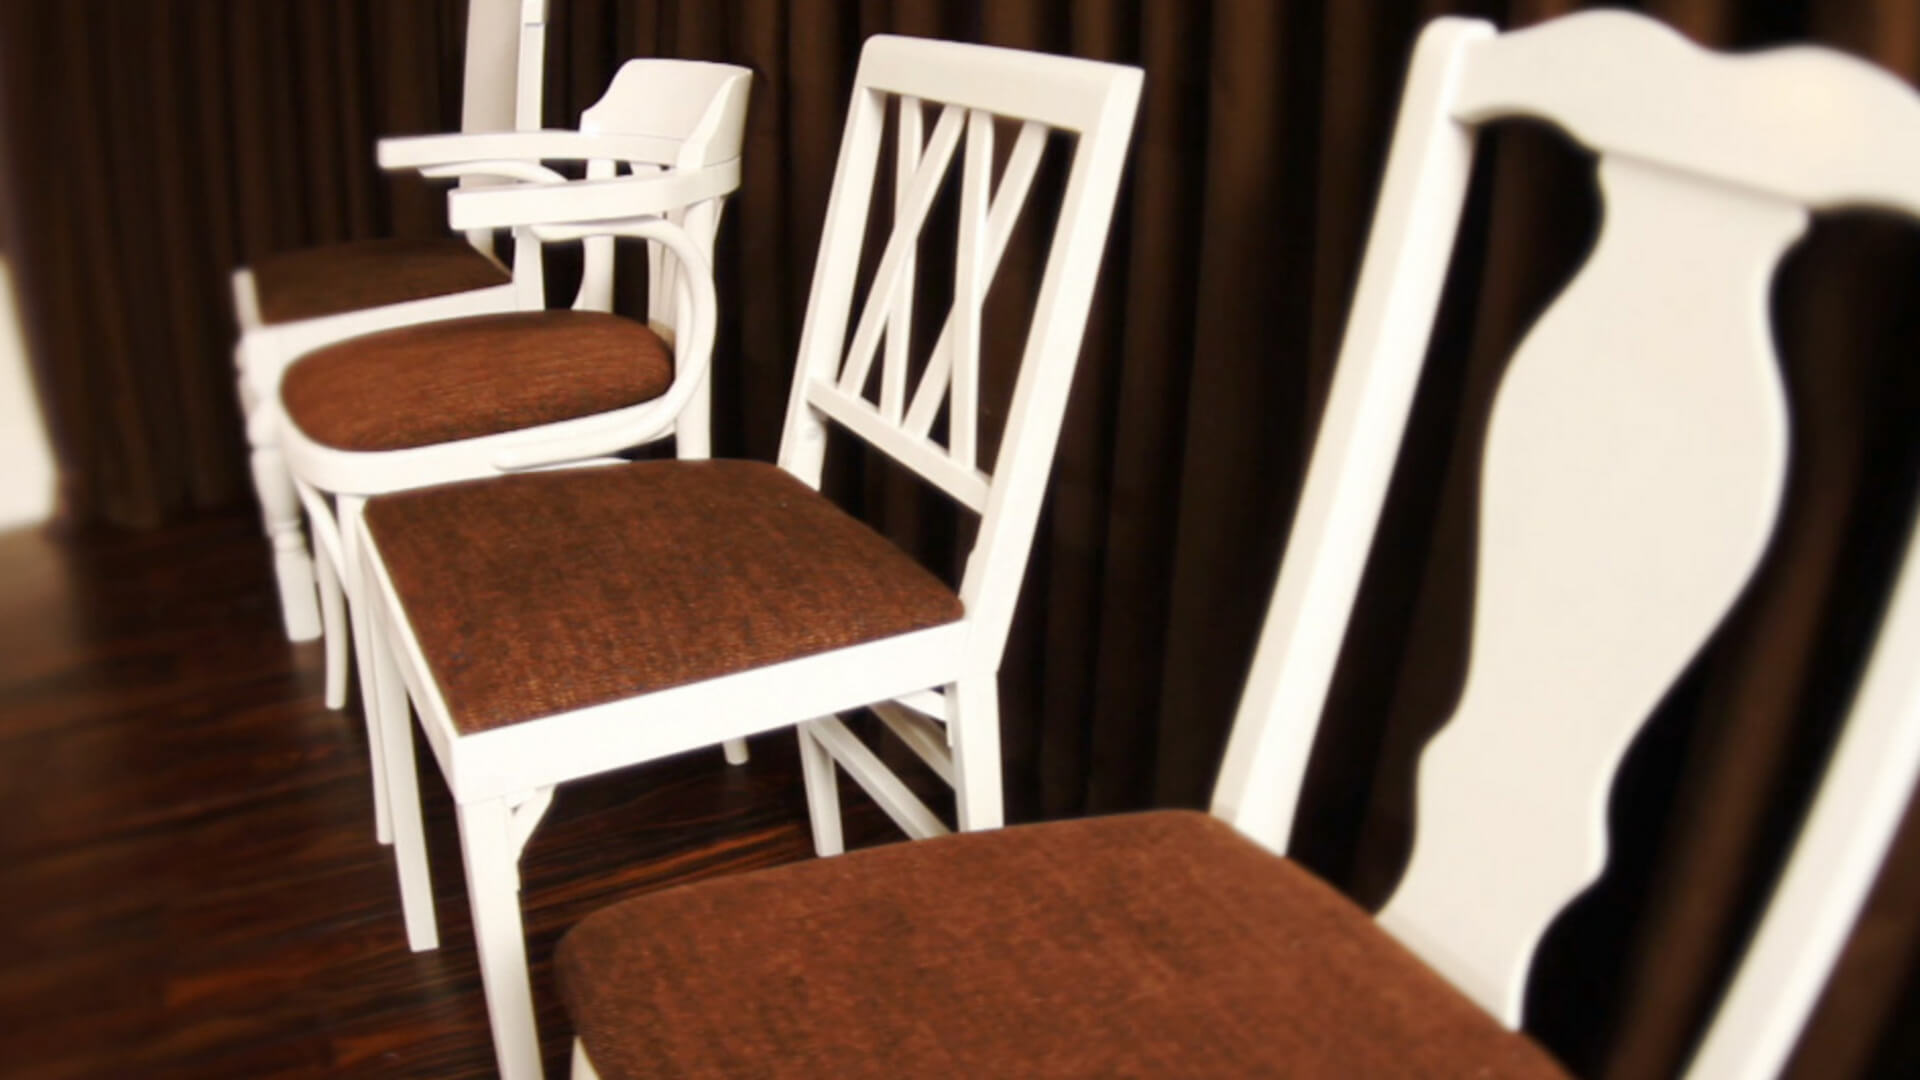 Chairs and furniture can also be donated